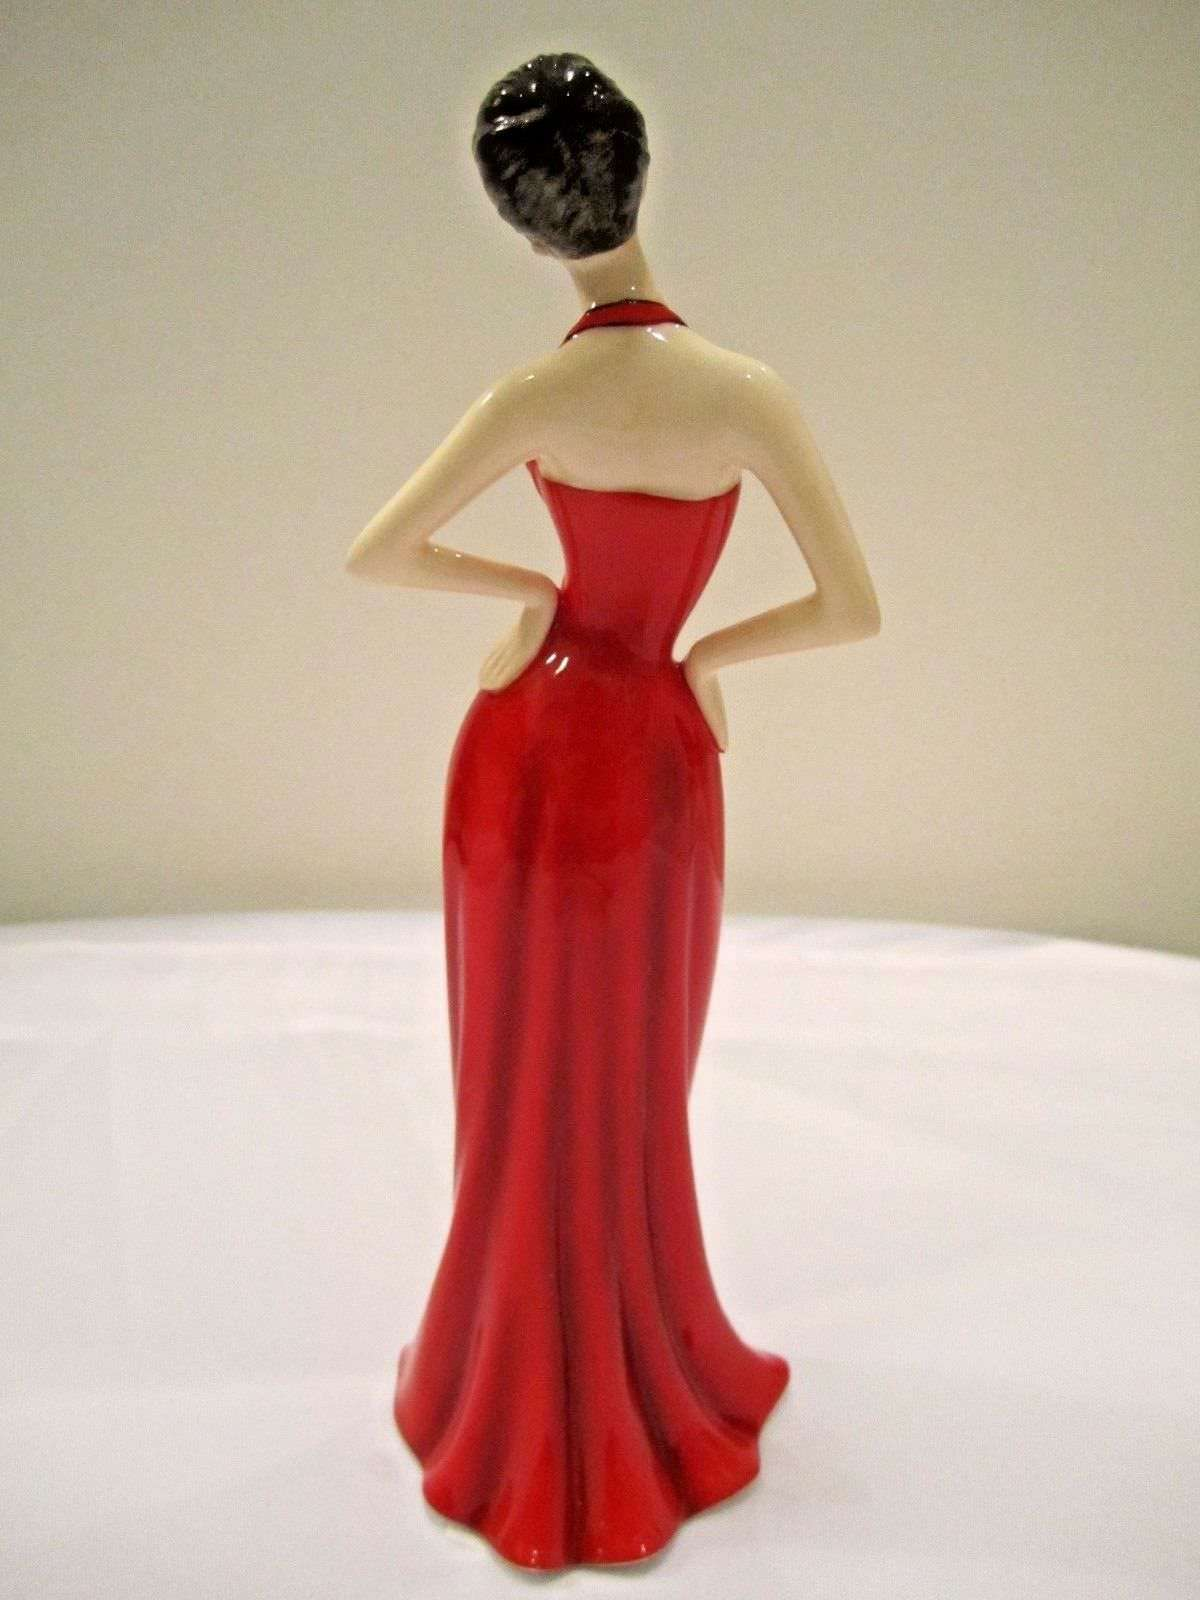 Royal Doulton Yolande Fashion Figurine 1950's Red Ball Gown V & A Museum NEW image 3